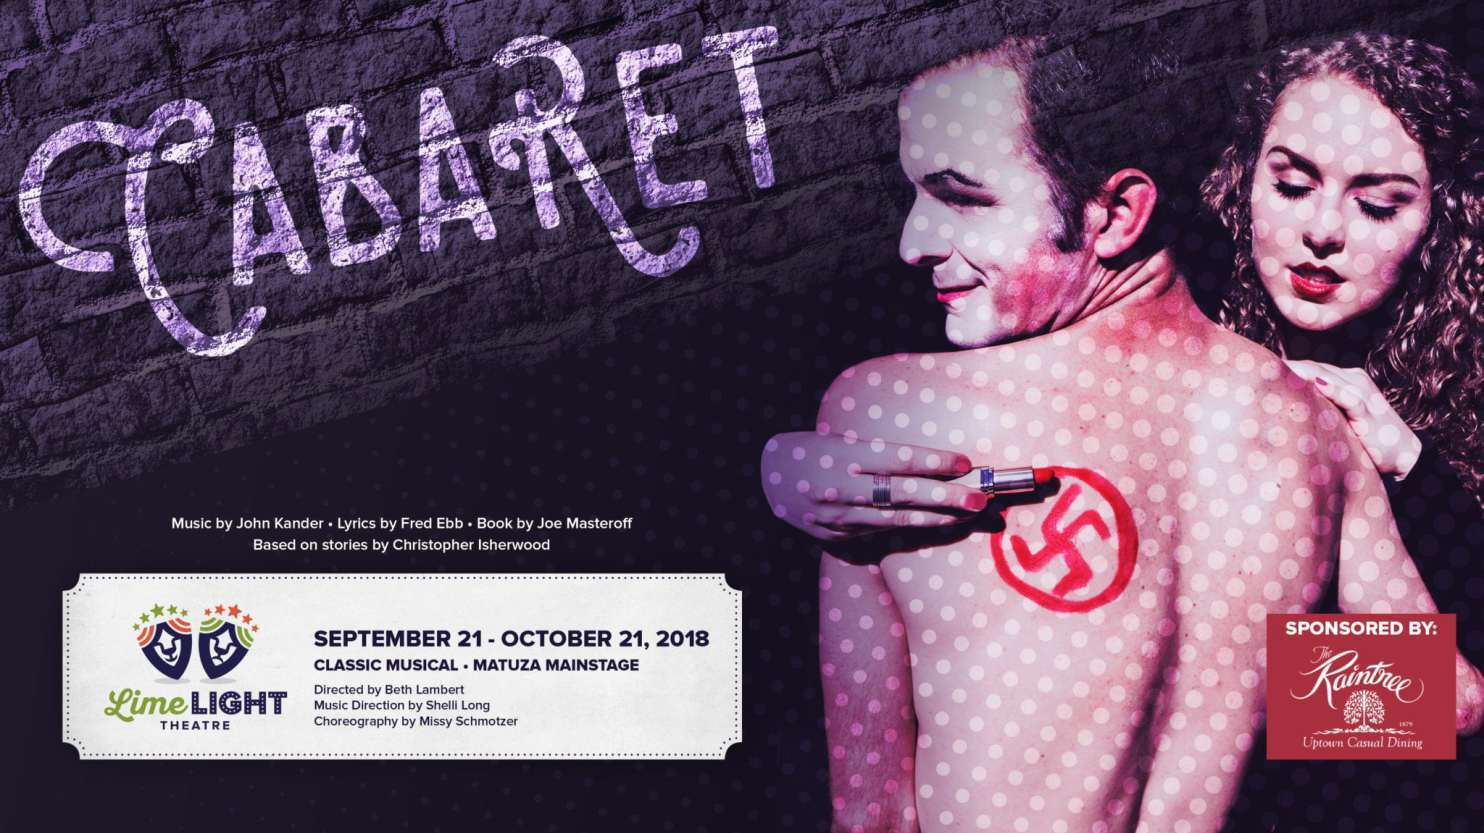 Image for Cabaret at Limelight